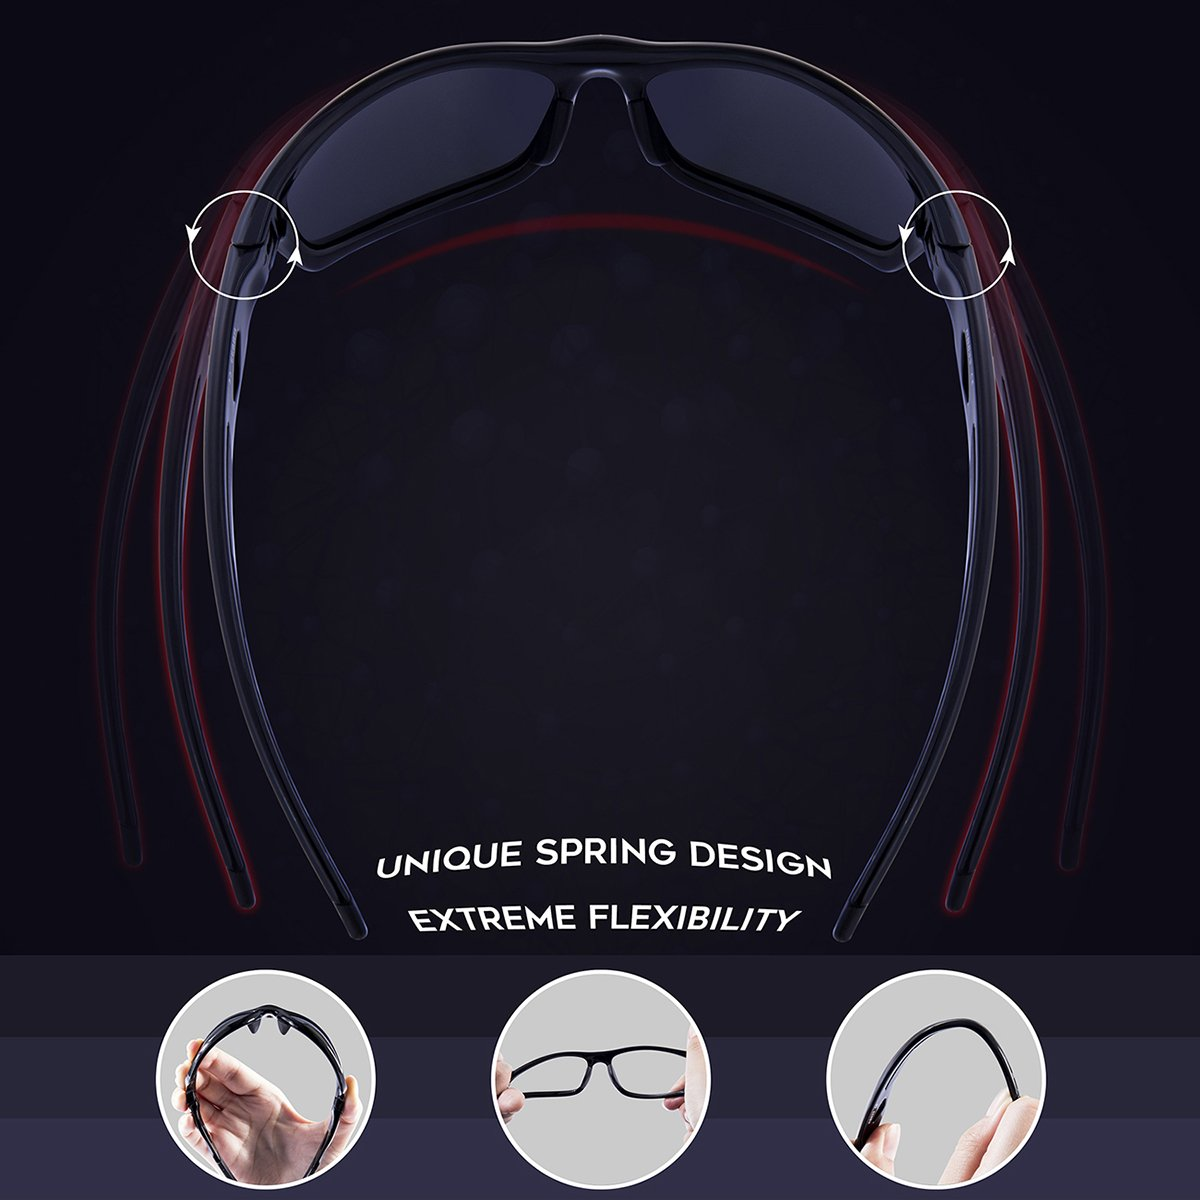 RIVBOS Polarized Sports Sunglasses Driving Sun Glasses Shades for Men Women Tr 90 Unbreakable Frame for Cycling Baseball Running Rb833 RB83305